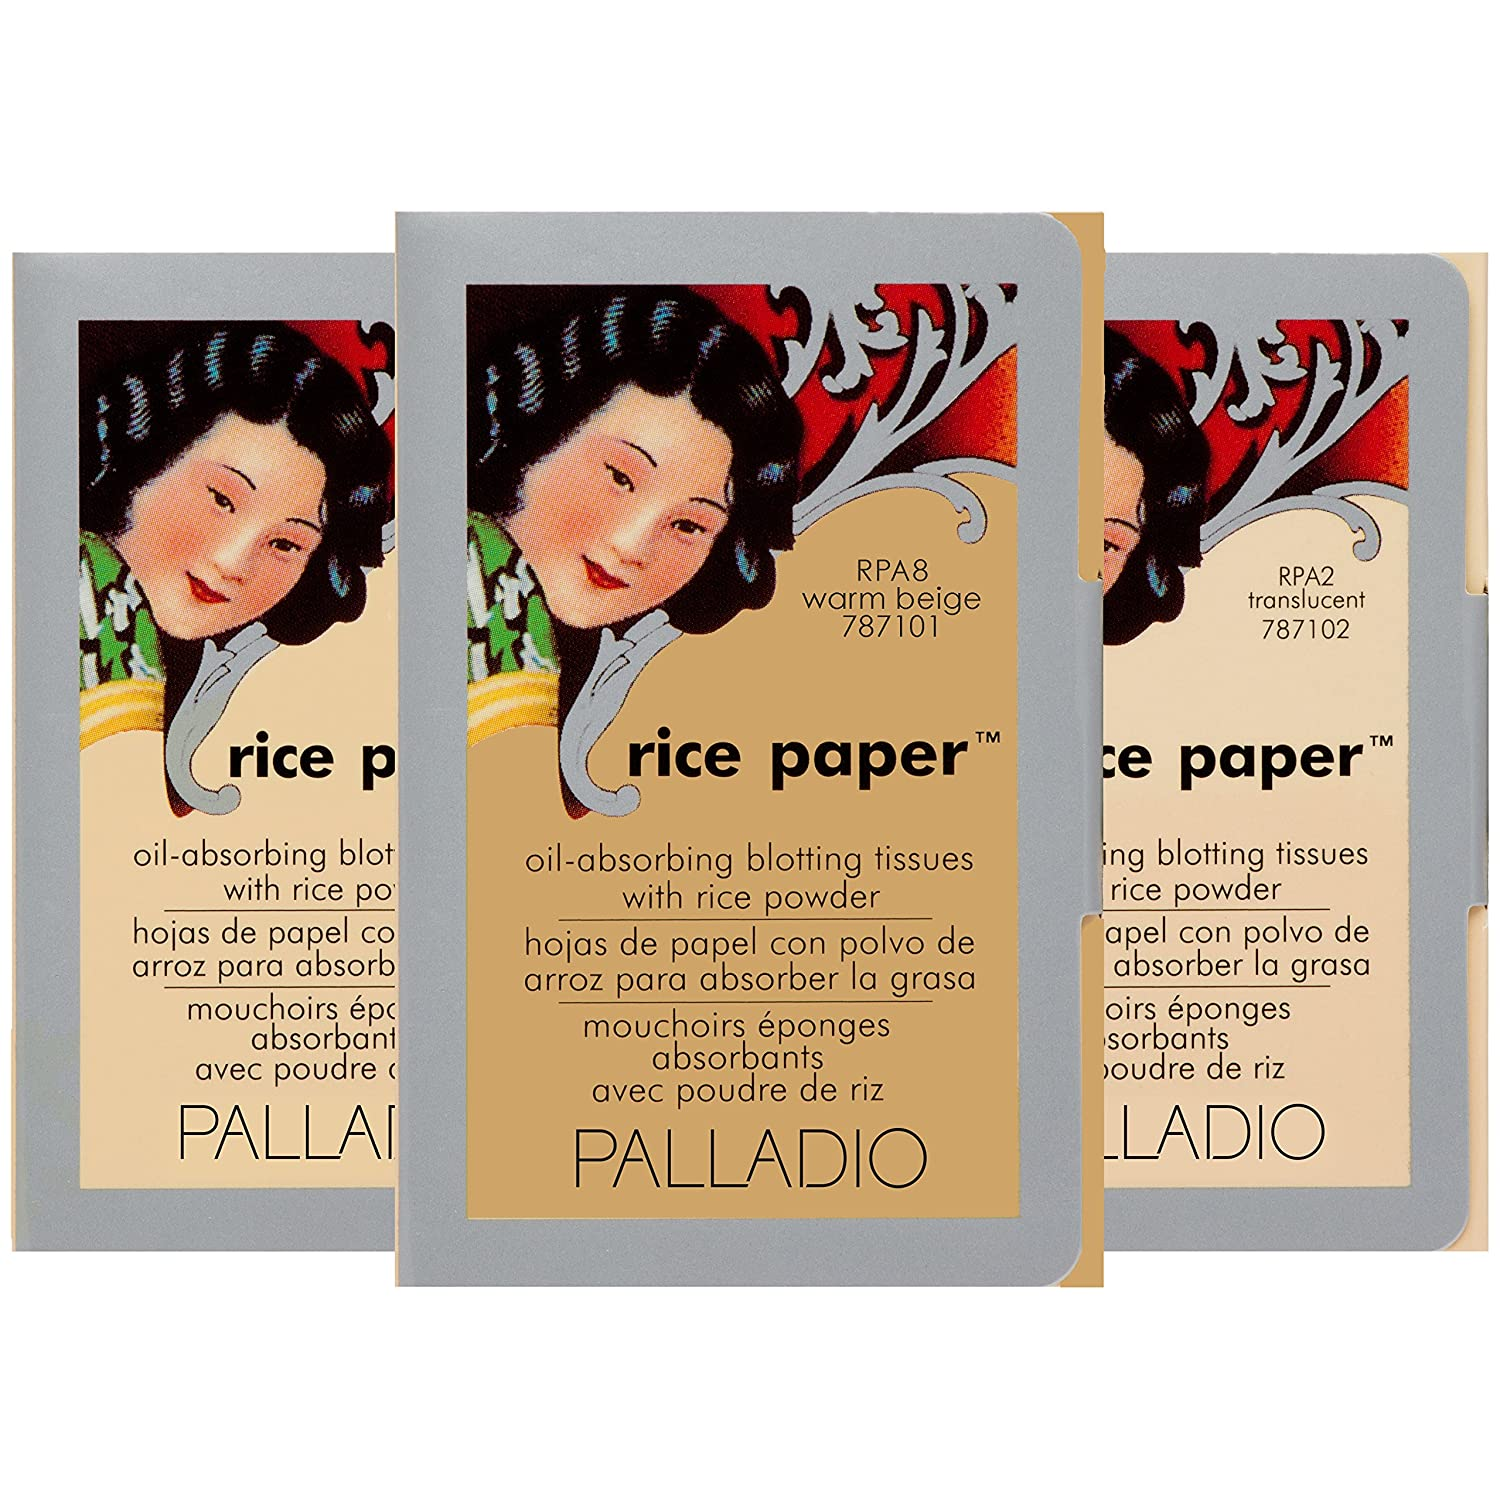 Palladio Rice Paper Tissues, Translucent/Natural/Warm Beige, 40 Sheets (Pack of 3), Face Blotting Sheets with Rice Powder Absorbs Oil, Helps Skin Stay Looking Fresh, Compact Size for Purse or Travel